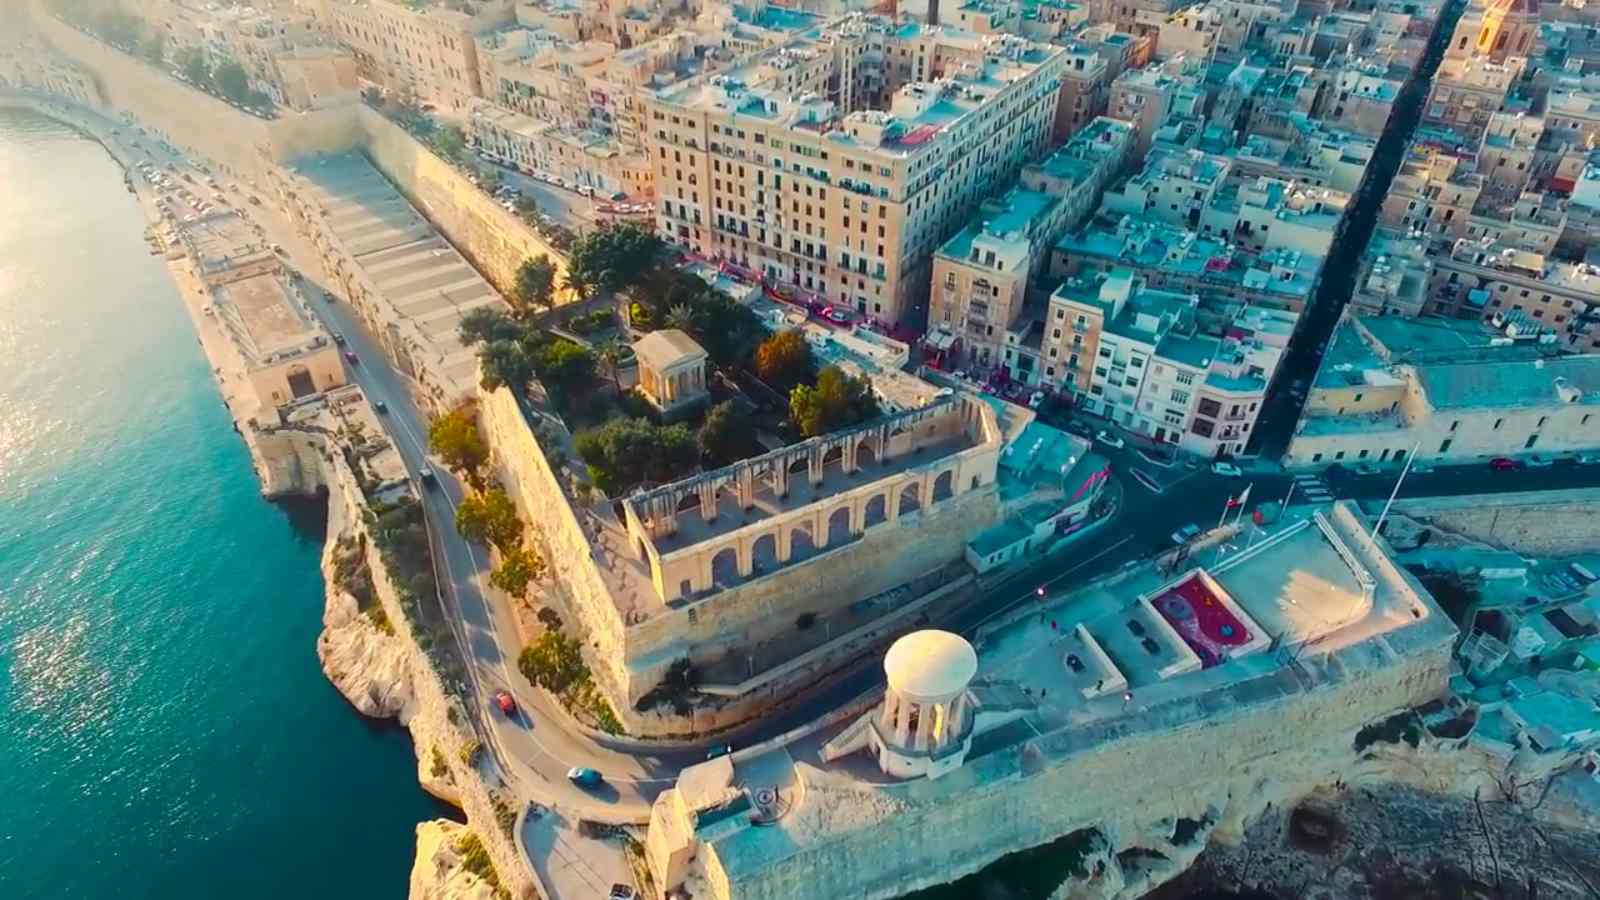 Malta: Aerial Drone Photography